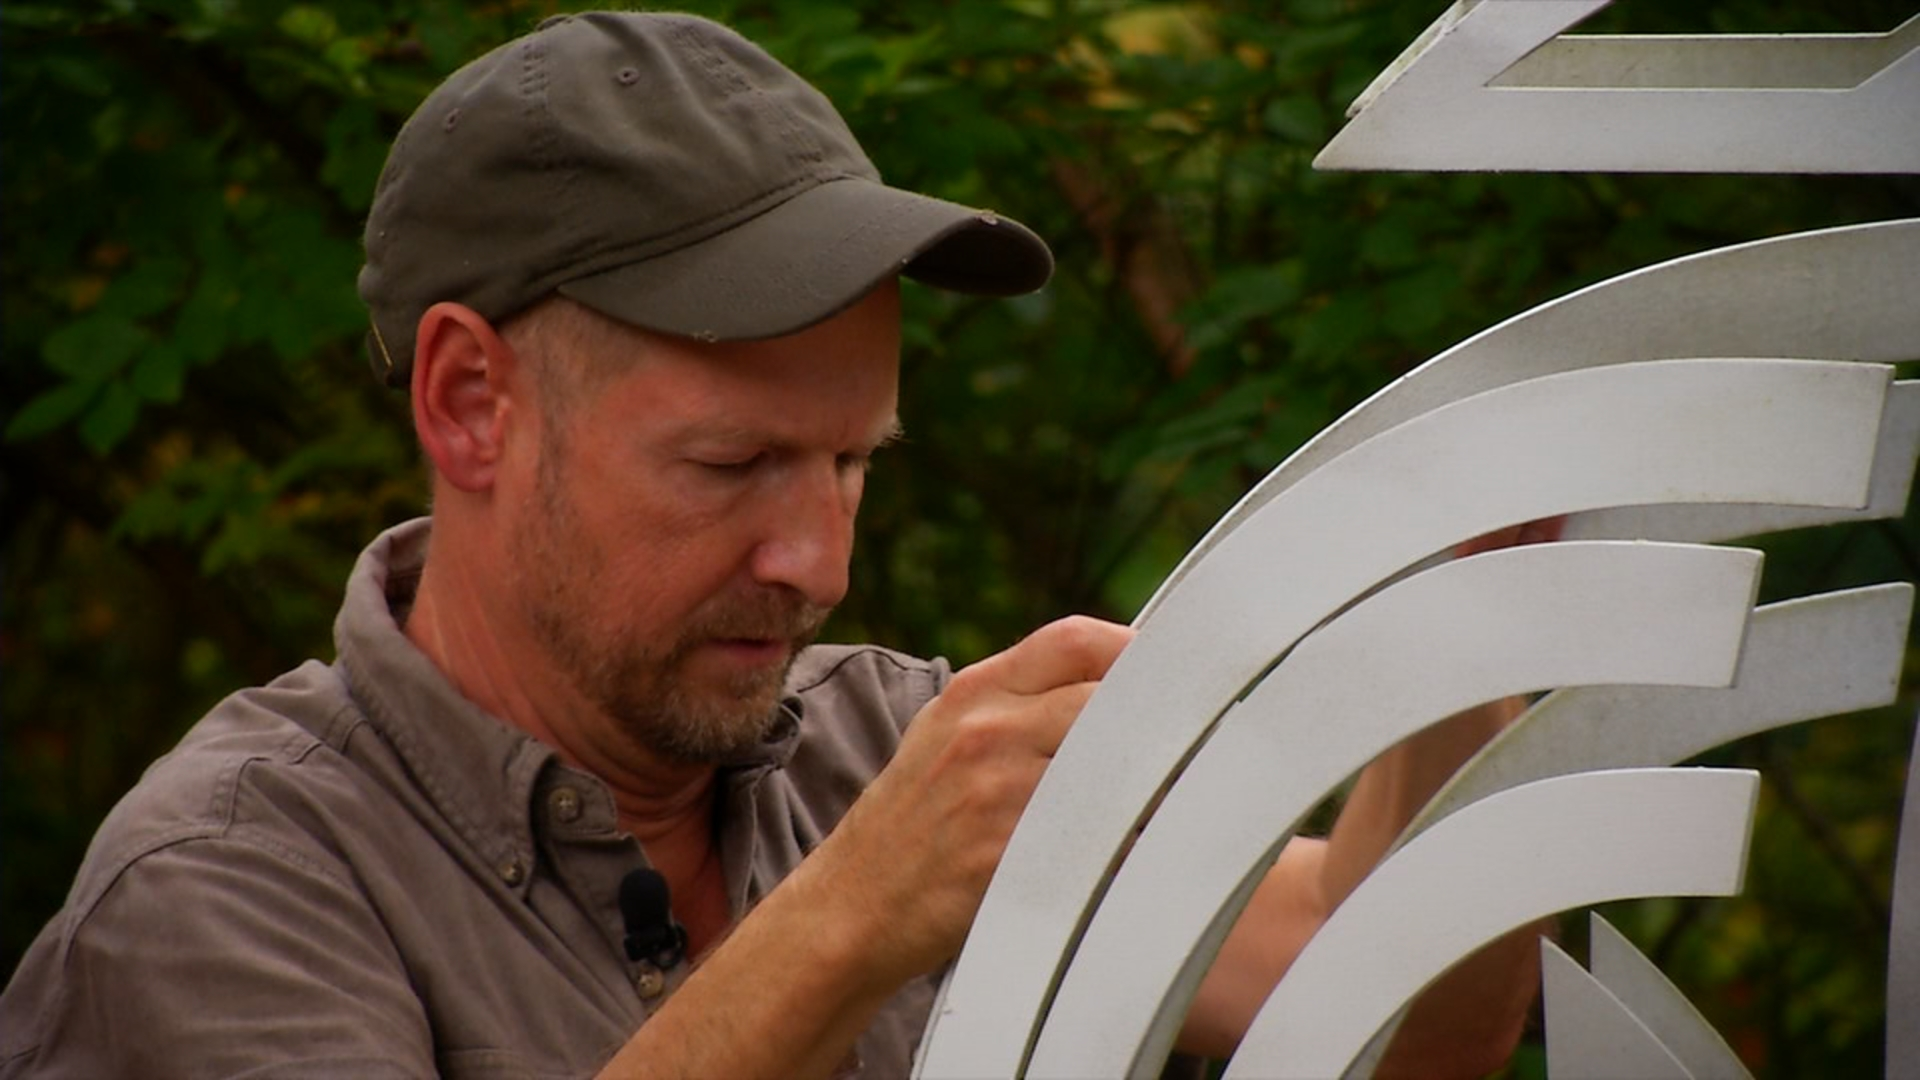 News13 filmed Sheldon while he cleaned up a sculpture at the Grovewood Gallery (Courtesy: WLOS)<p></p>